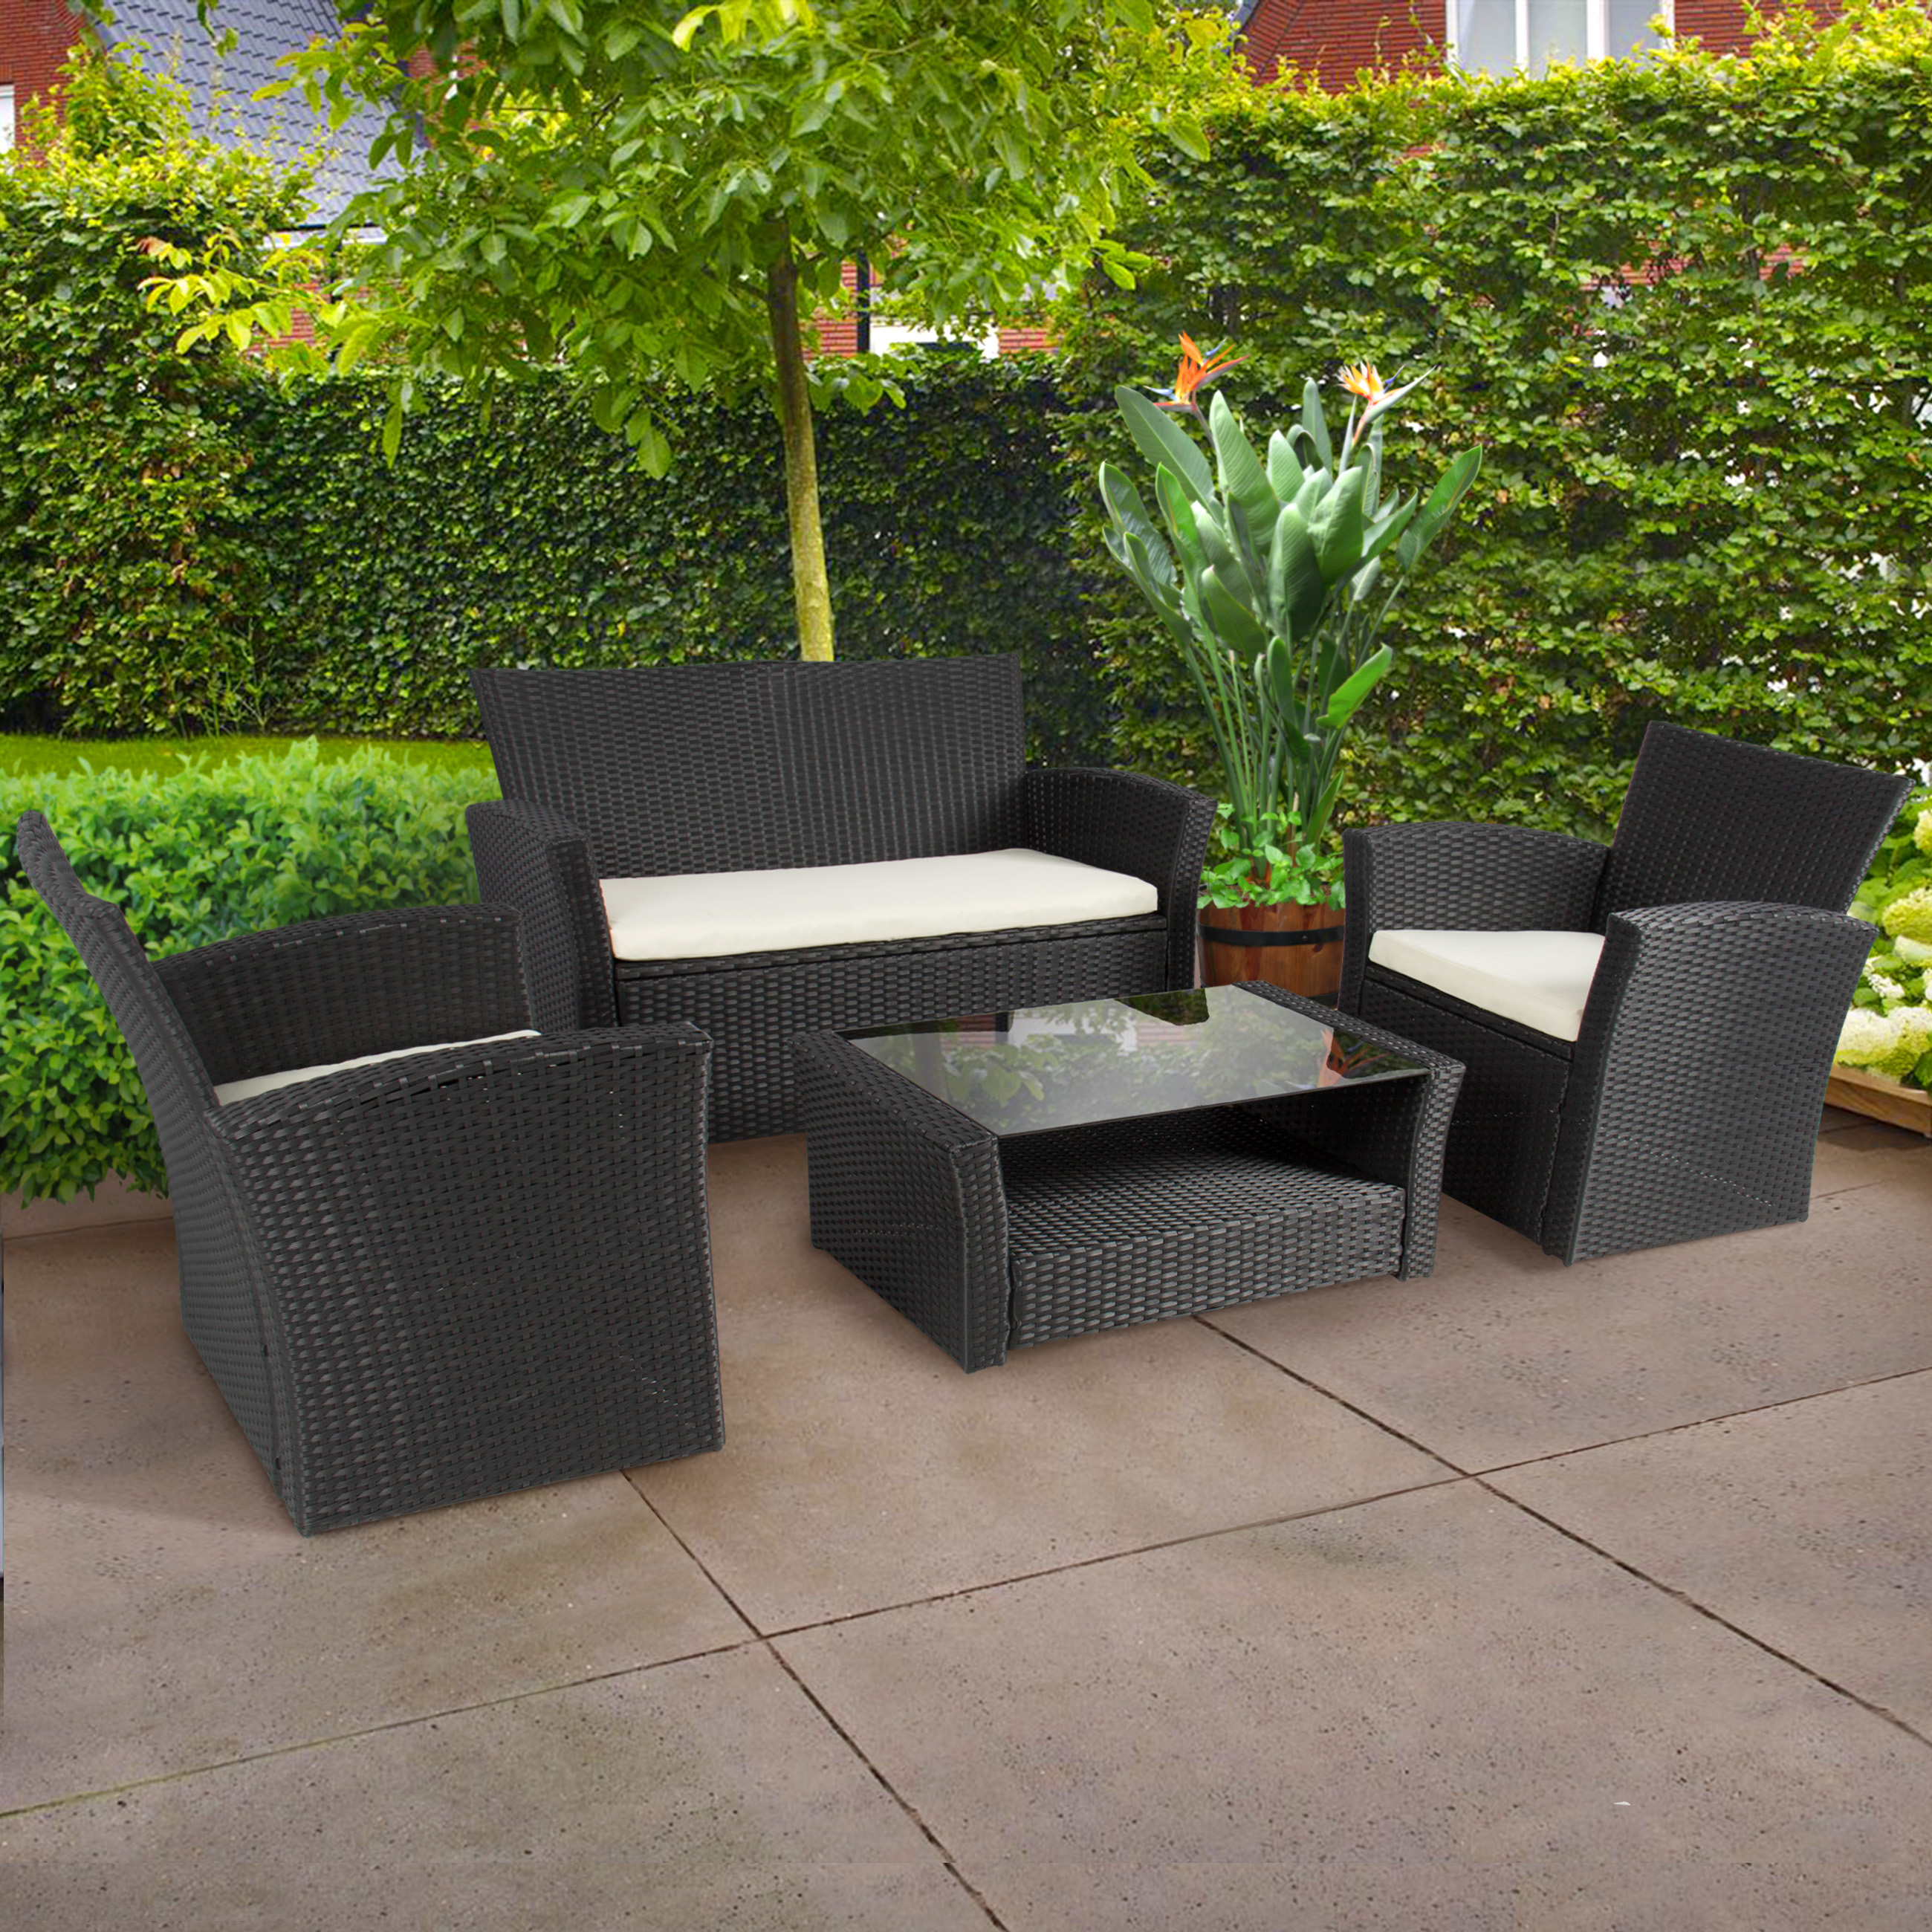 Garden Furniture 4 U modren garden furniture 4 u ltd to throughout decorating ideas